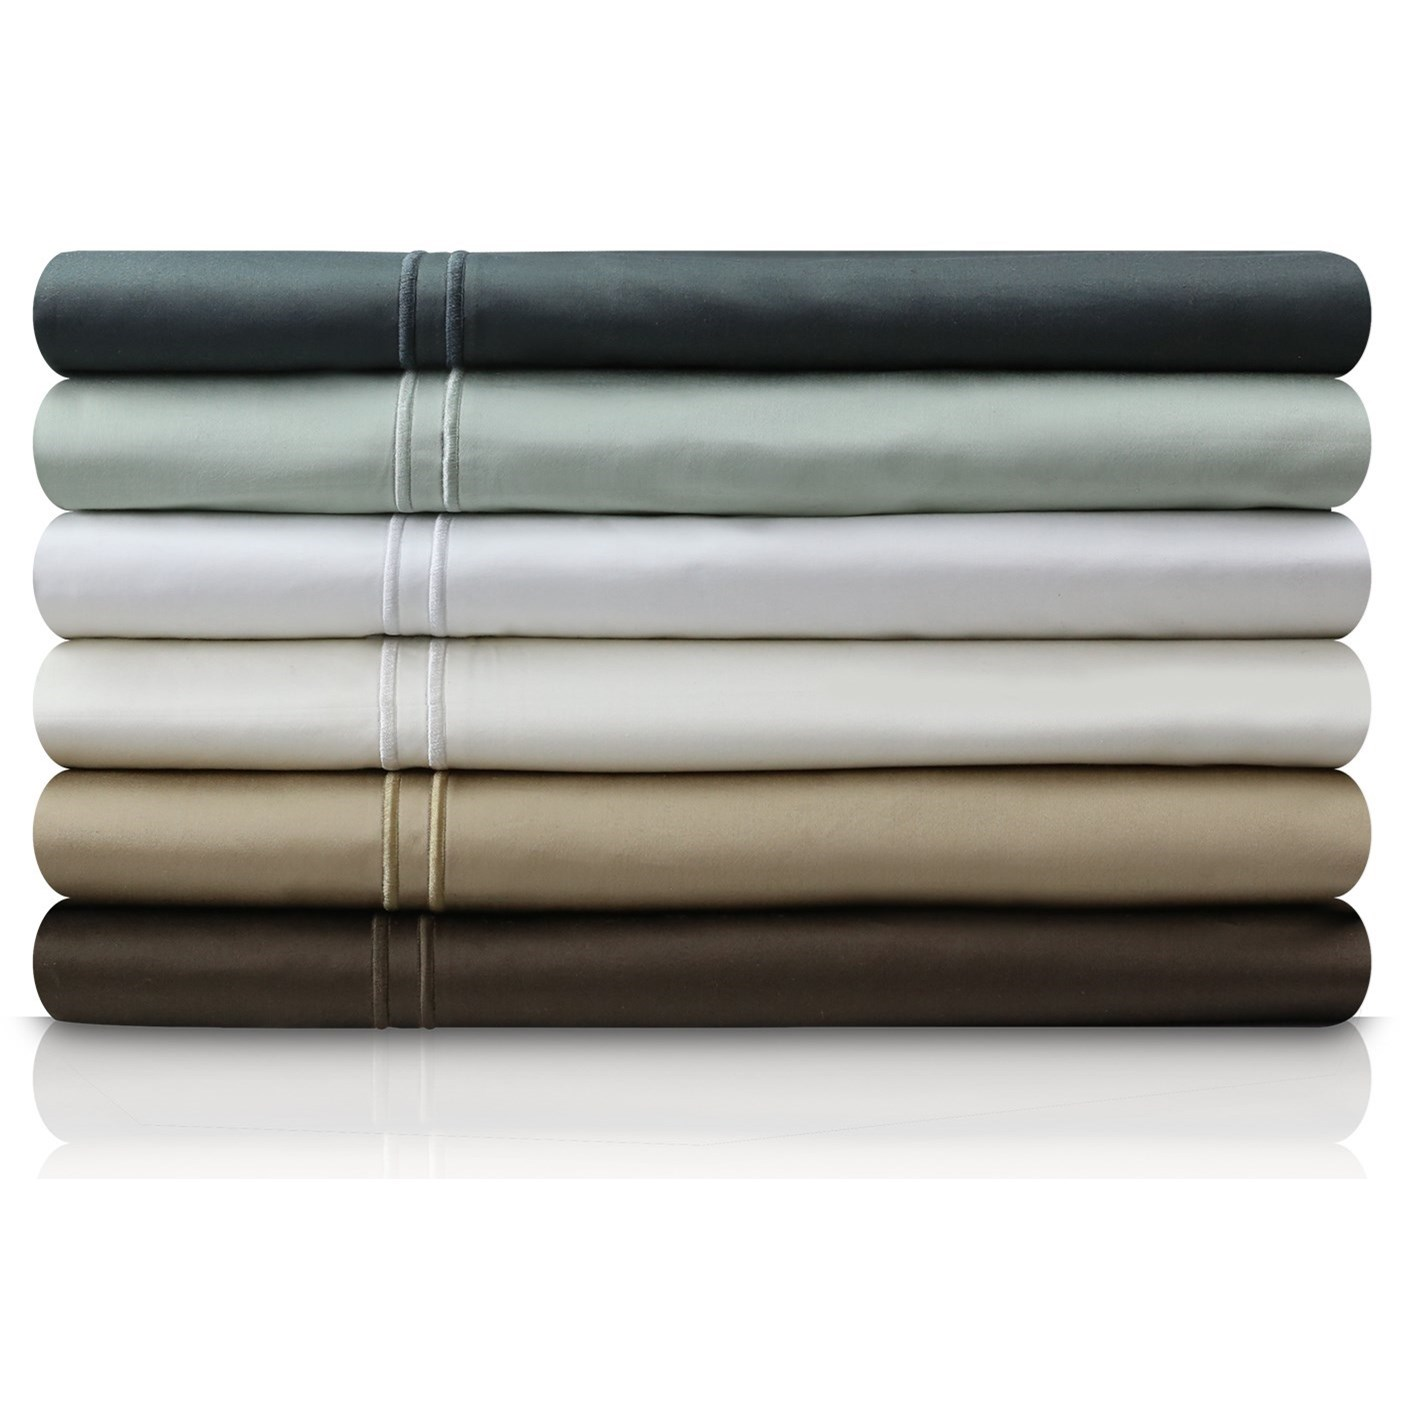 Malouf Egyptian Cotton Queen 400 TC Egyptian Cotton Sheet Set - Item Number: MA04QQWHSS